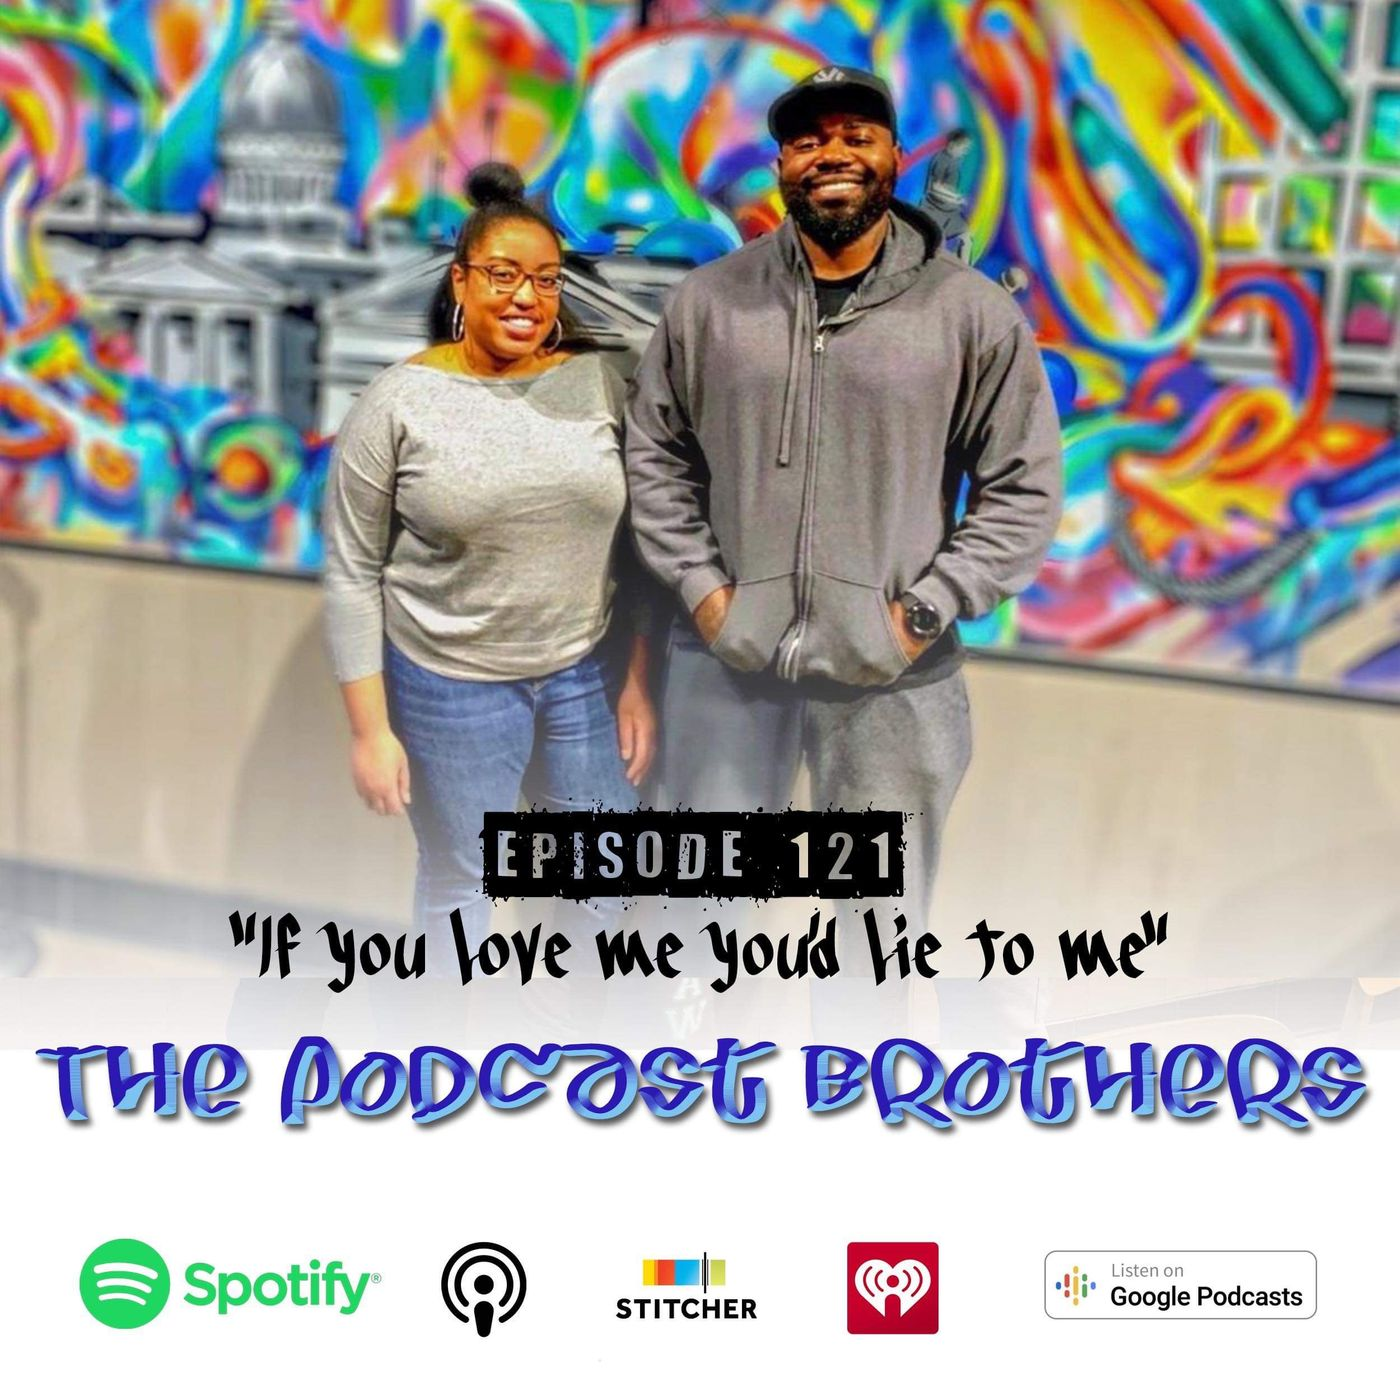 Episode 121 | If you love me you'd lie to me